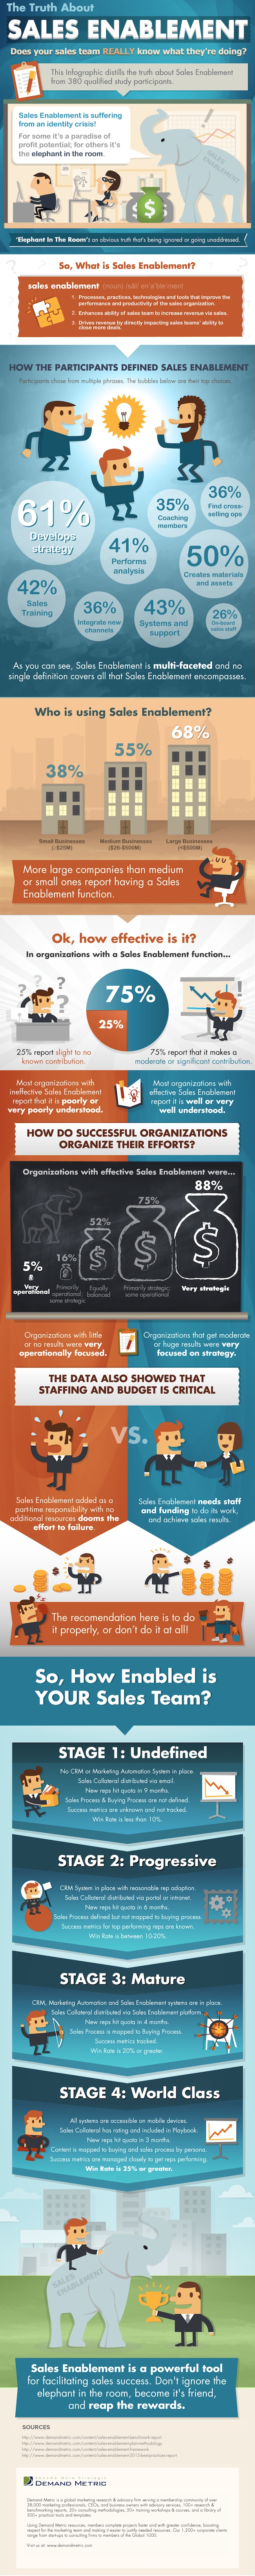 Sales-Enablement-Infographic.jpg